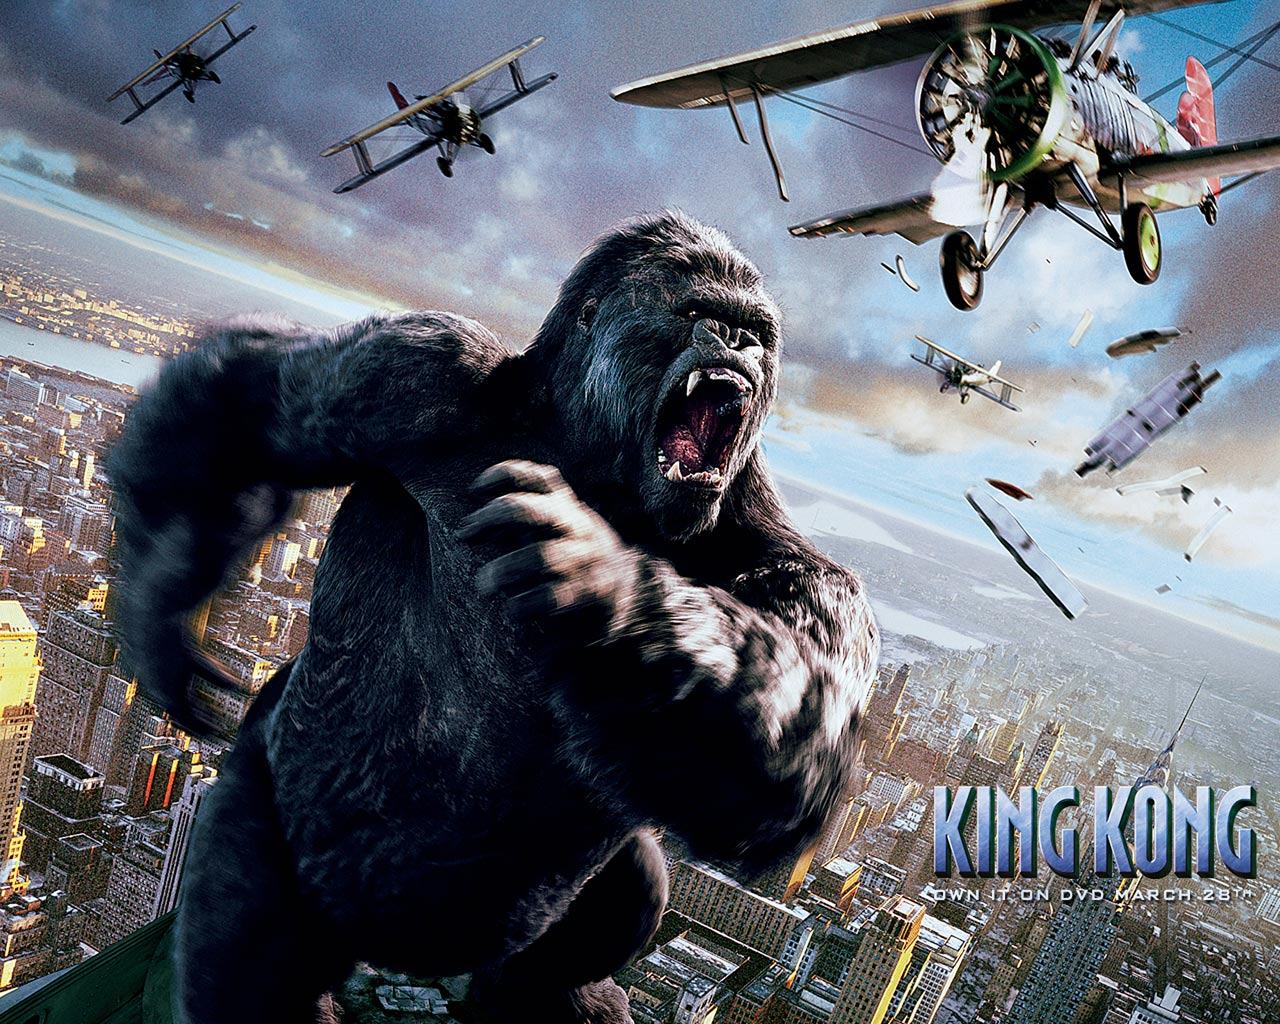 http://newyorksightseeingtours.files.wordpress.com/2010/04/king_kong_2005_jack_black.jpg